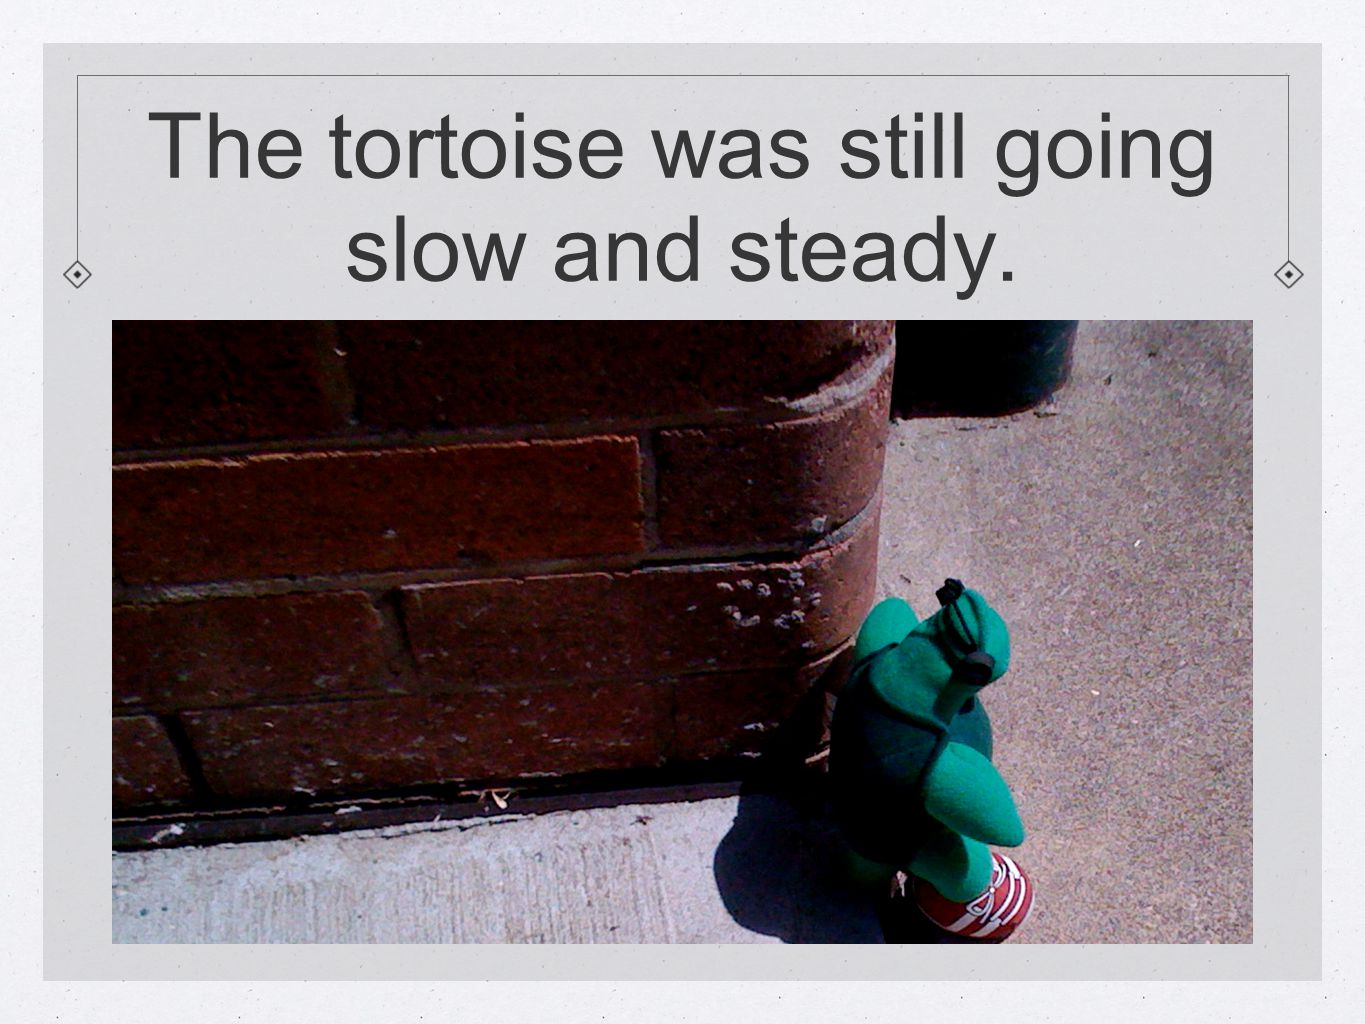 The tortoise was still going slow and steady.